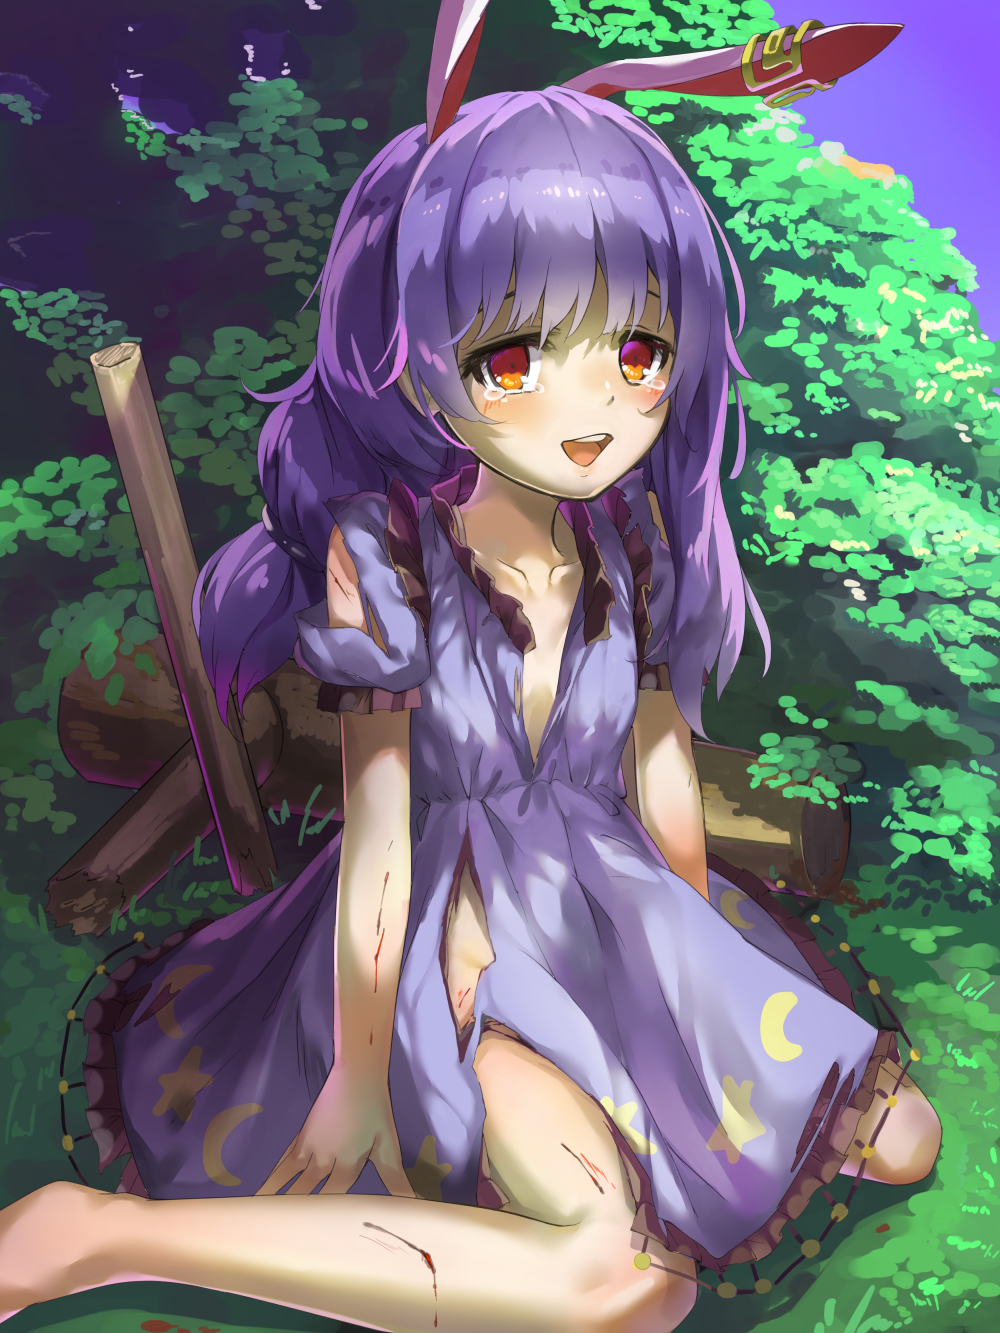 1girl animal_ears arms_at_sides bangs blood_on_arm blood_on_leg blue_dress blue_hair braided_ponytail broken broken_weapon bush collarbone crescent_moon_symbol cuts day dress ear_clip eyelashes foot_out_of_frame grass highres injury kine open_mouth outdoors piyodesu rabbit_ears red_eyes seiran_(touhou) short_hair short_sleeves sitting solo star tearing_up torn_clothes torn_dress touhou wariza weapon